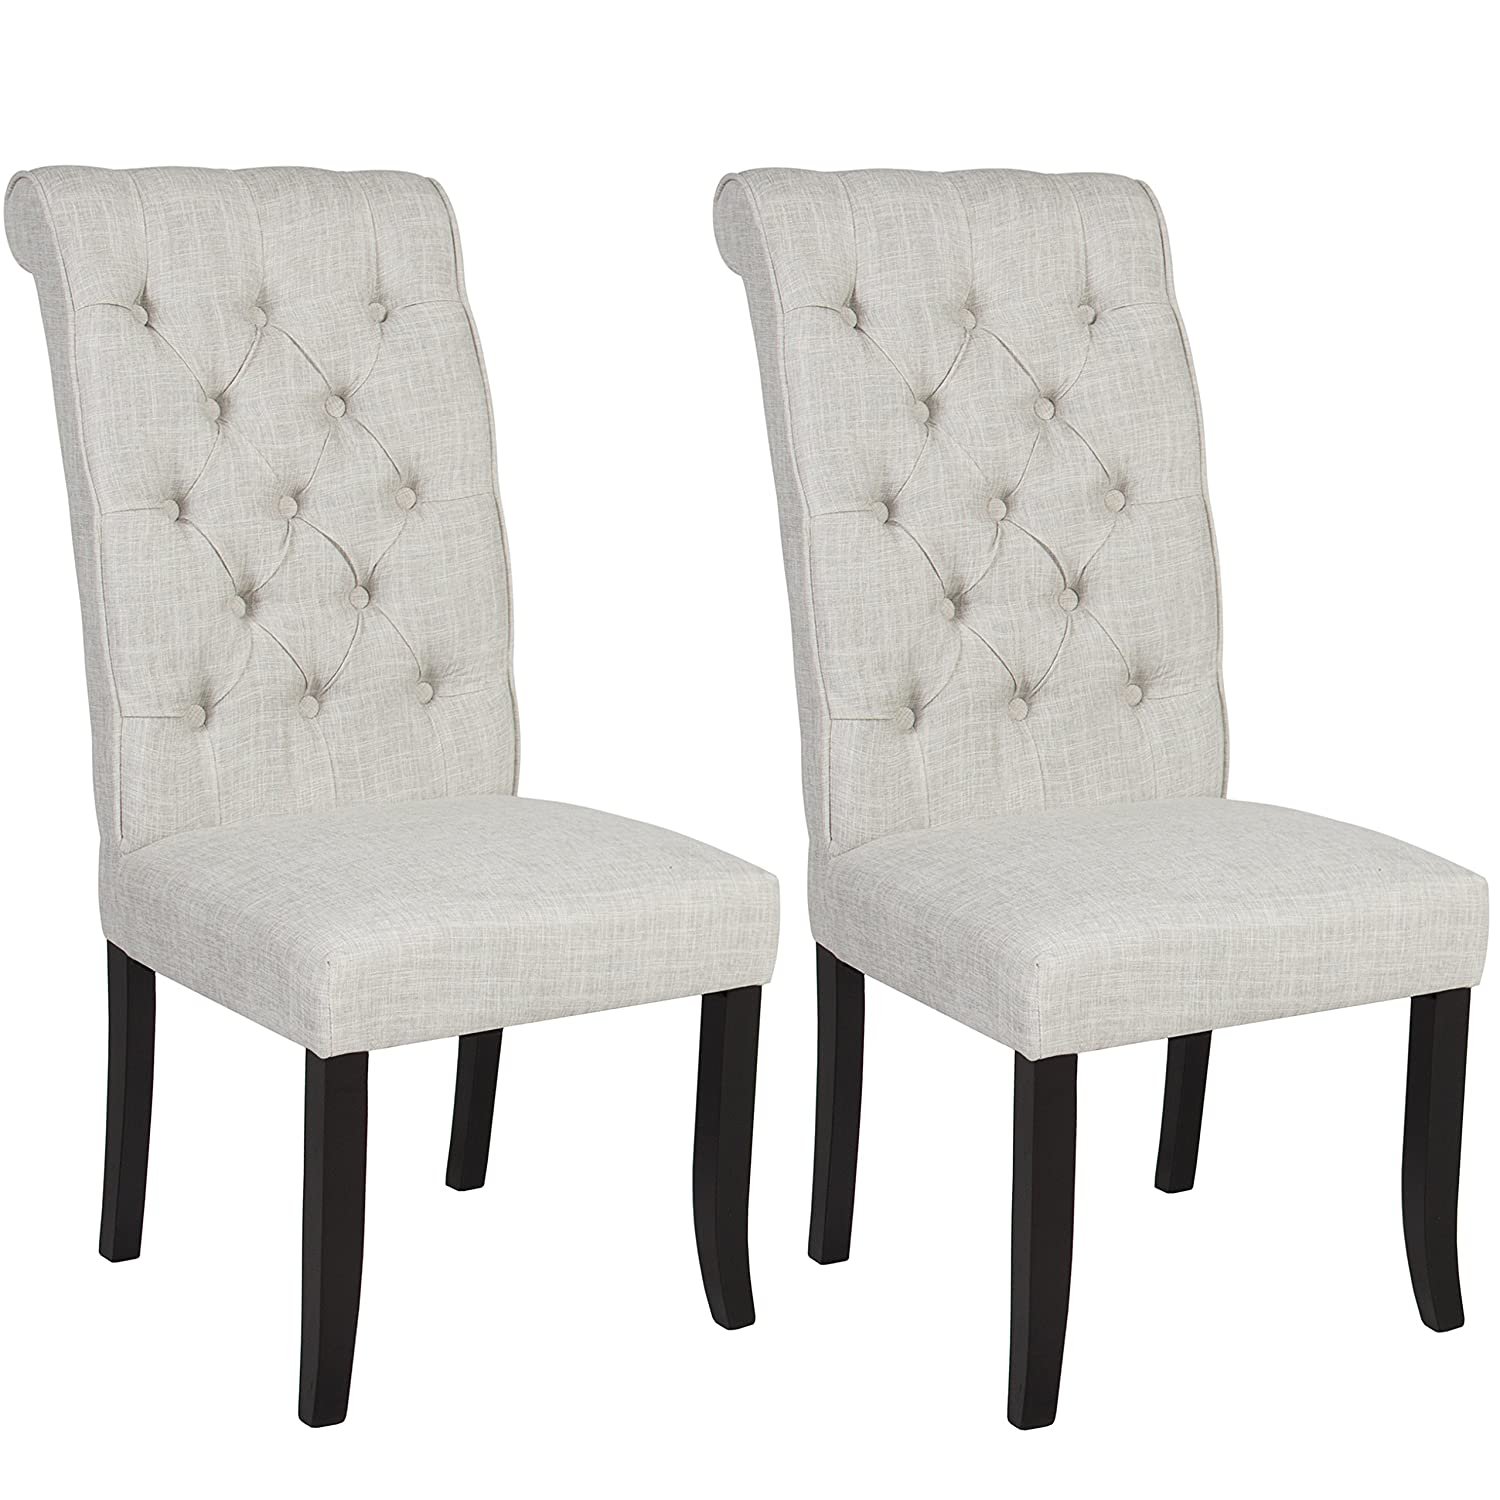 Amazon Best Choice Products Furniture Set 2 Tufted